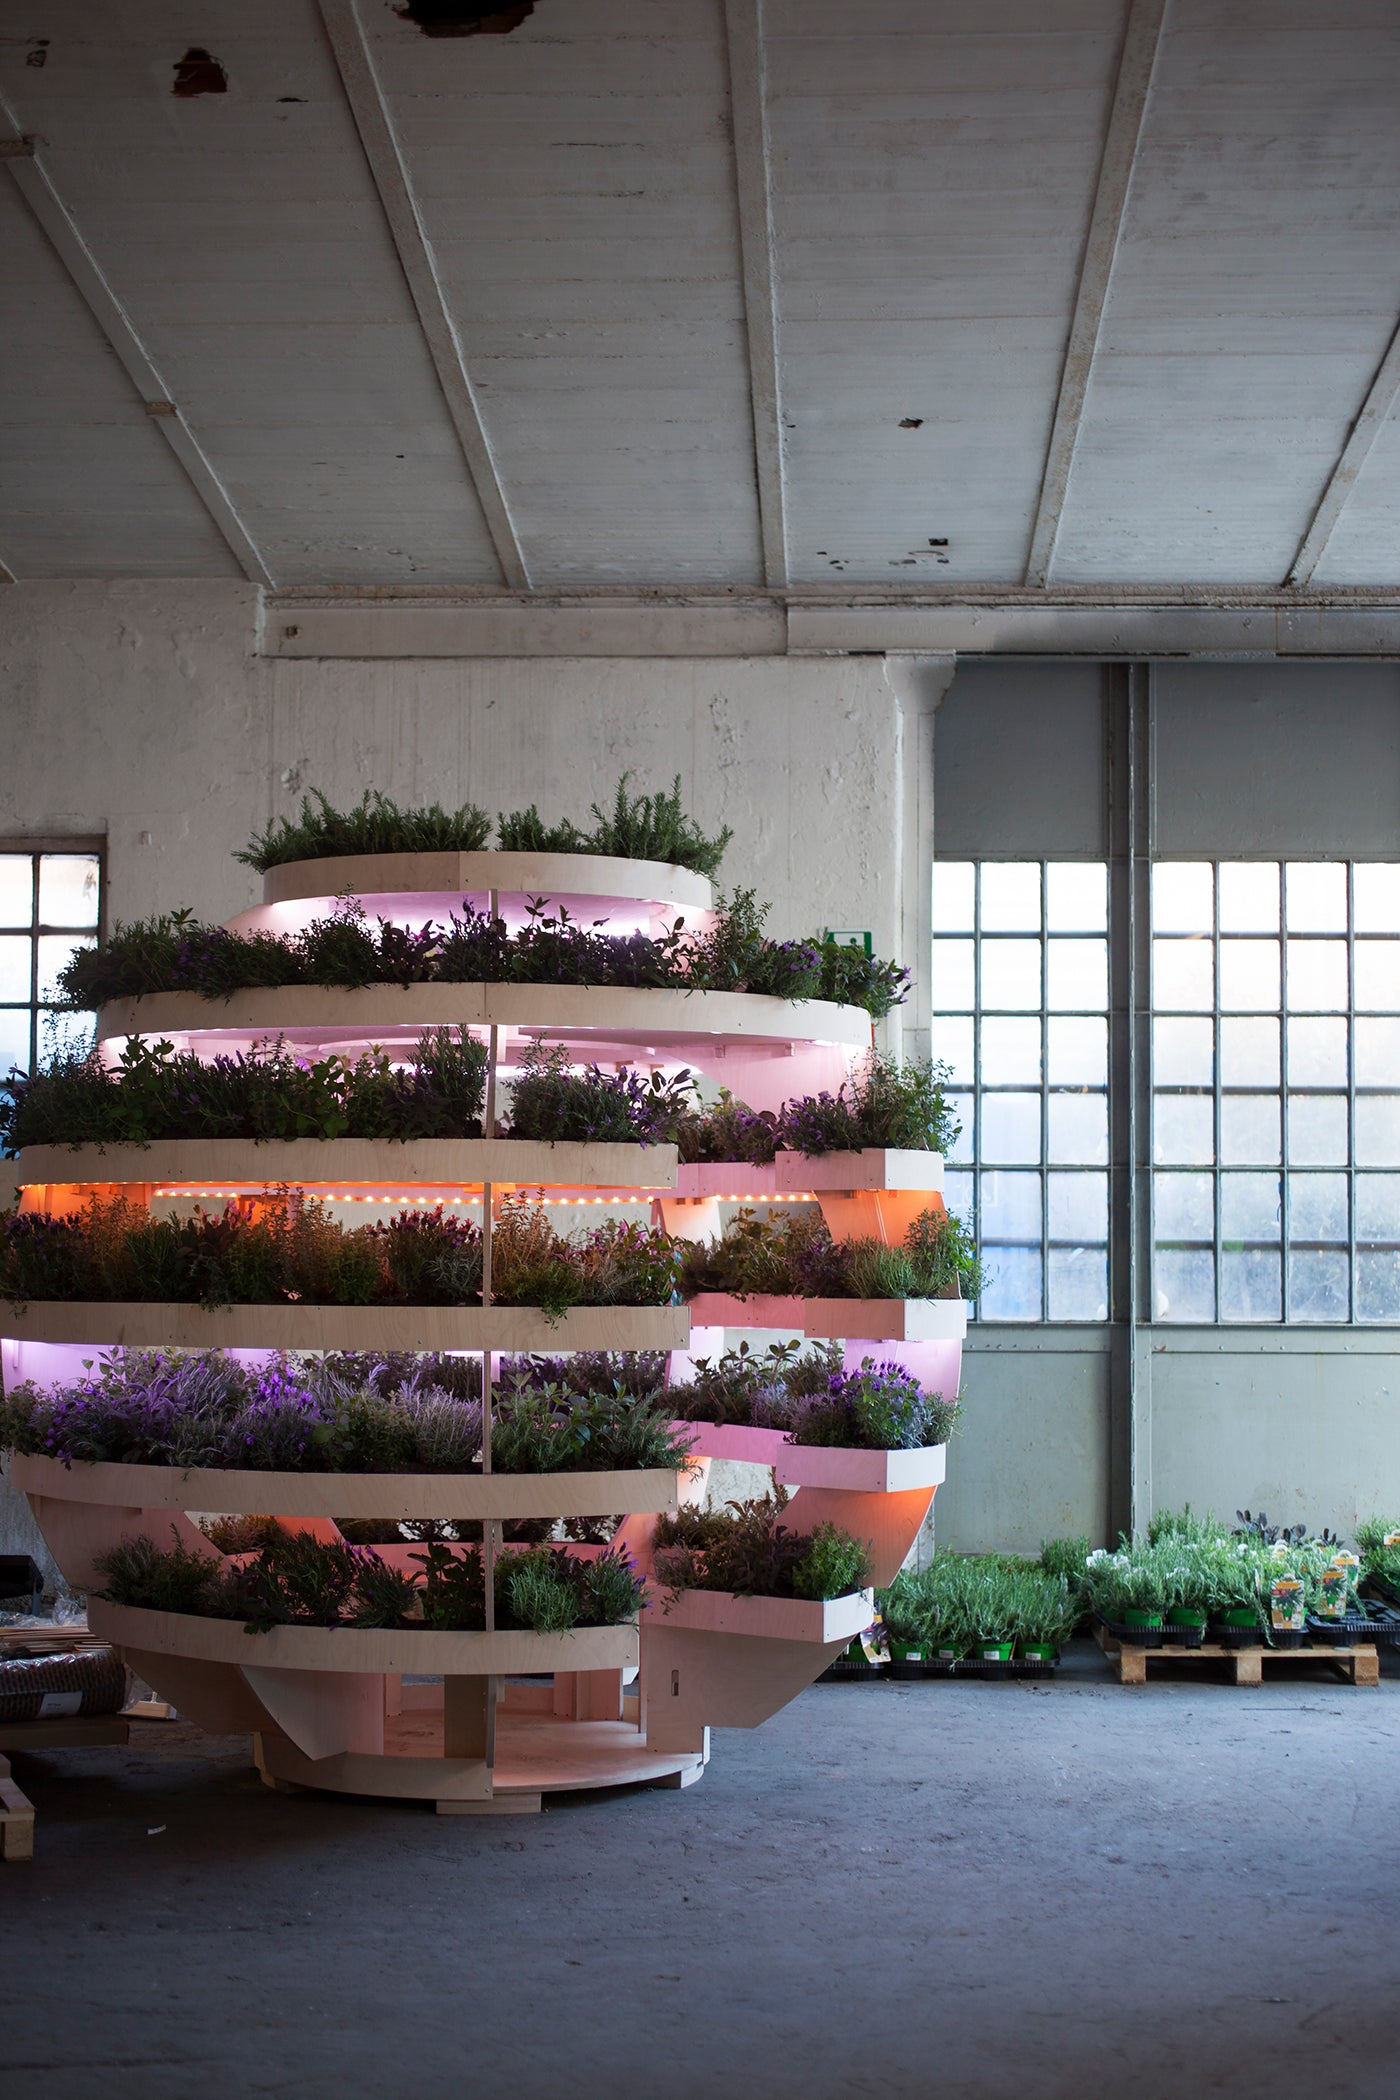 The Growroom by Space10. Photo: Alicia Sjöström_